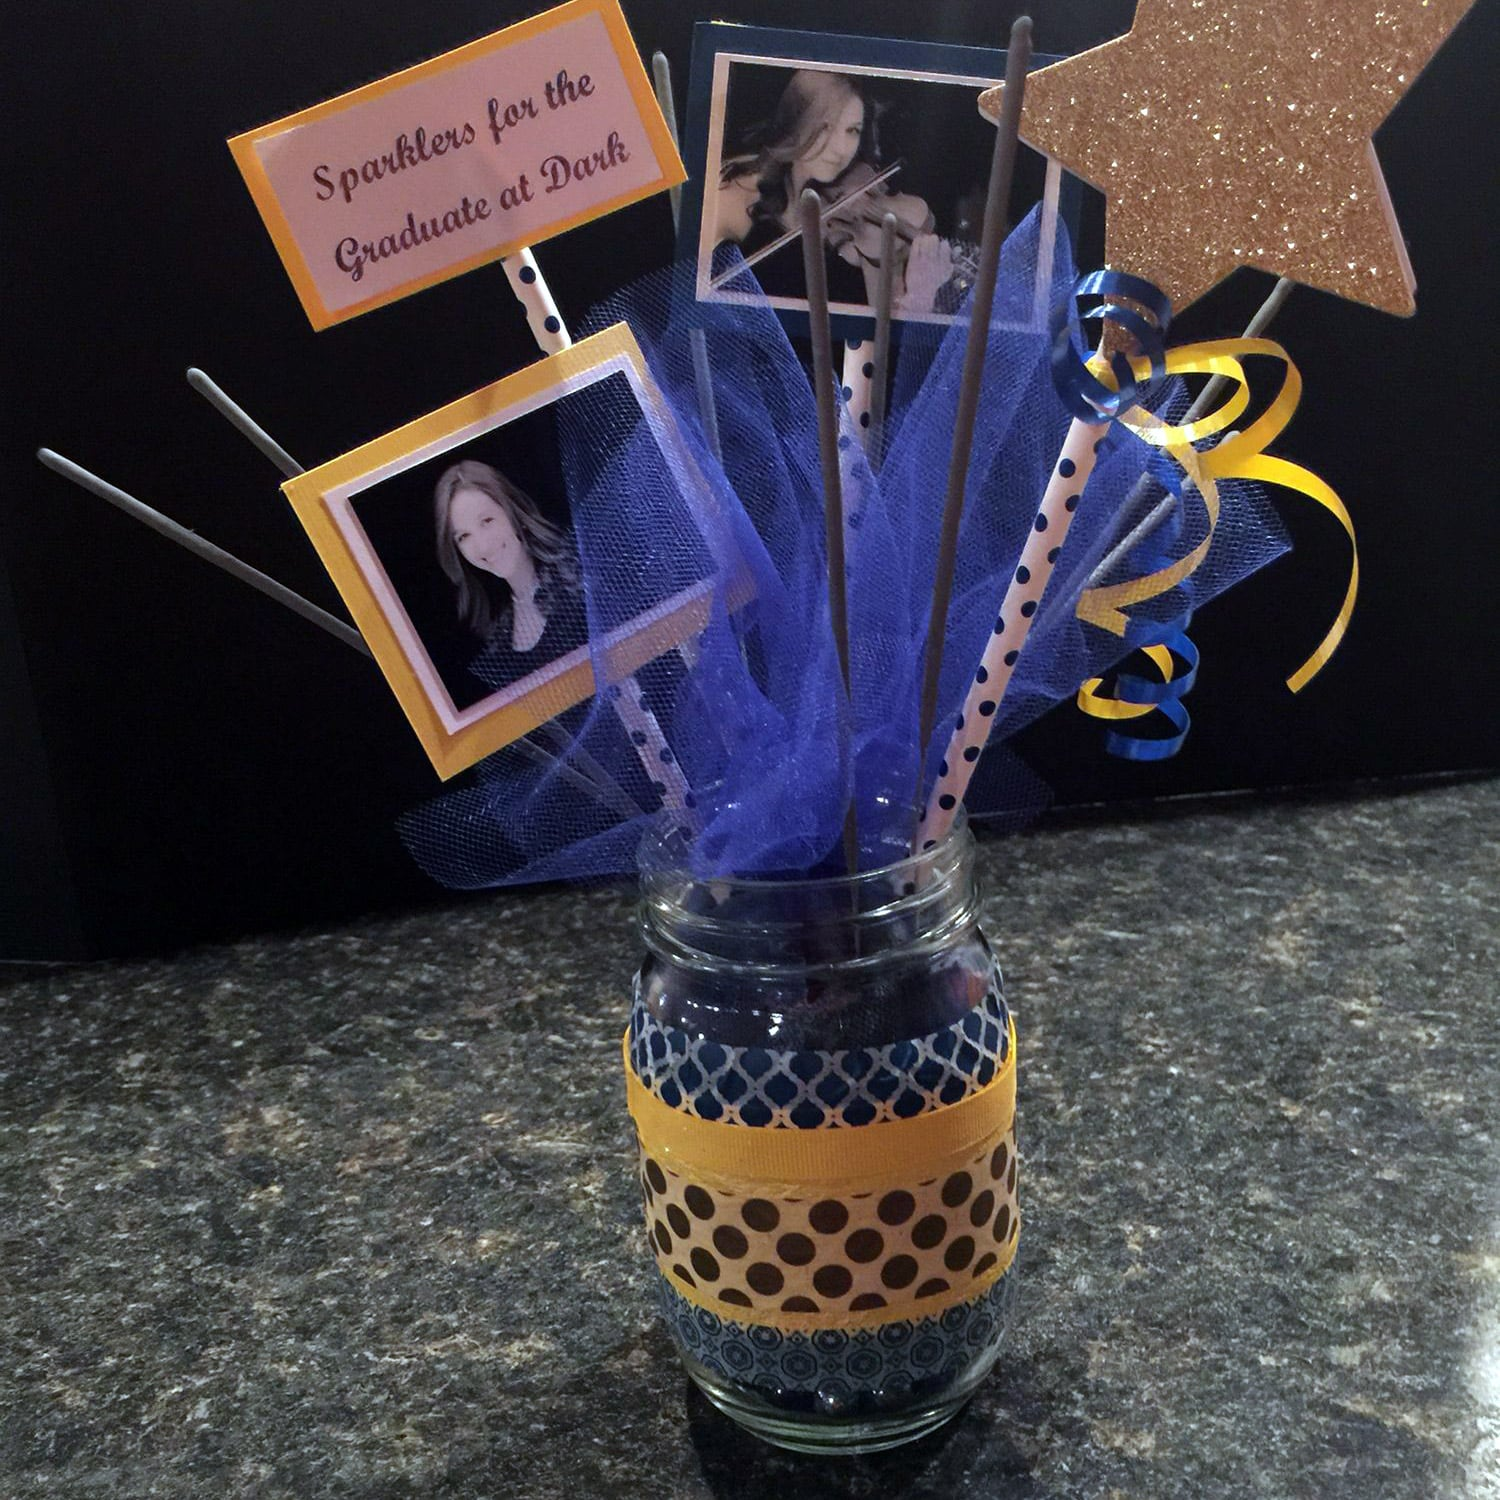 Image of a Sparkler Centerpiece for a Graduation Party